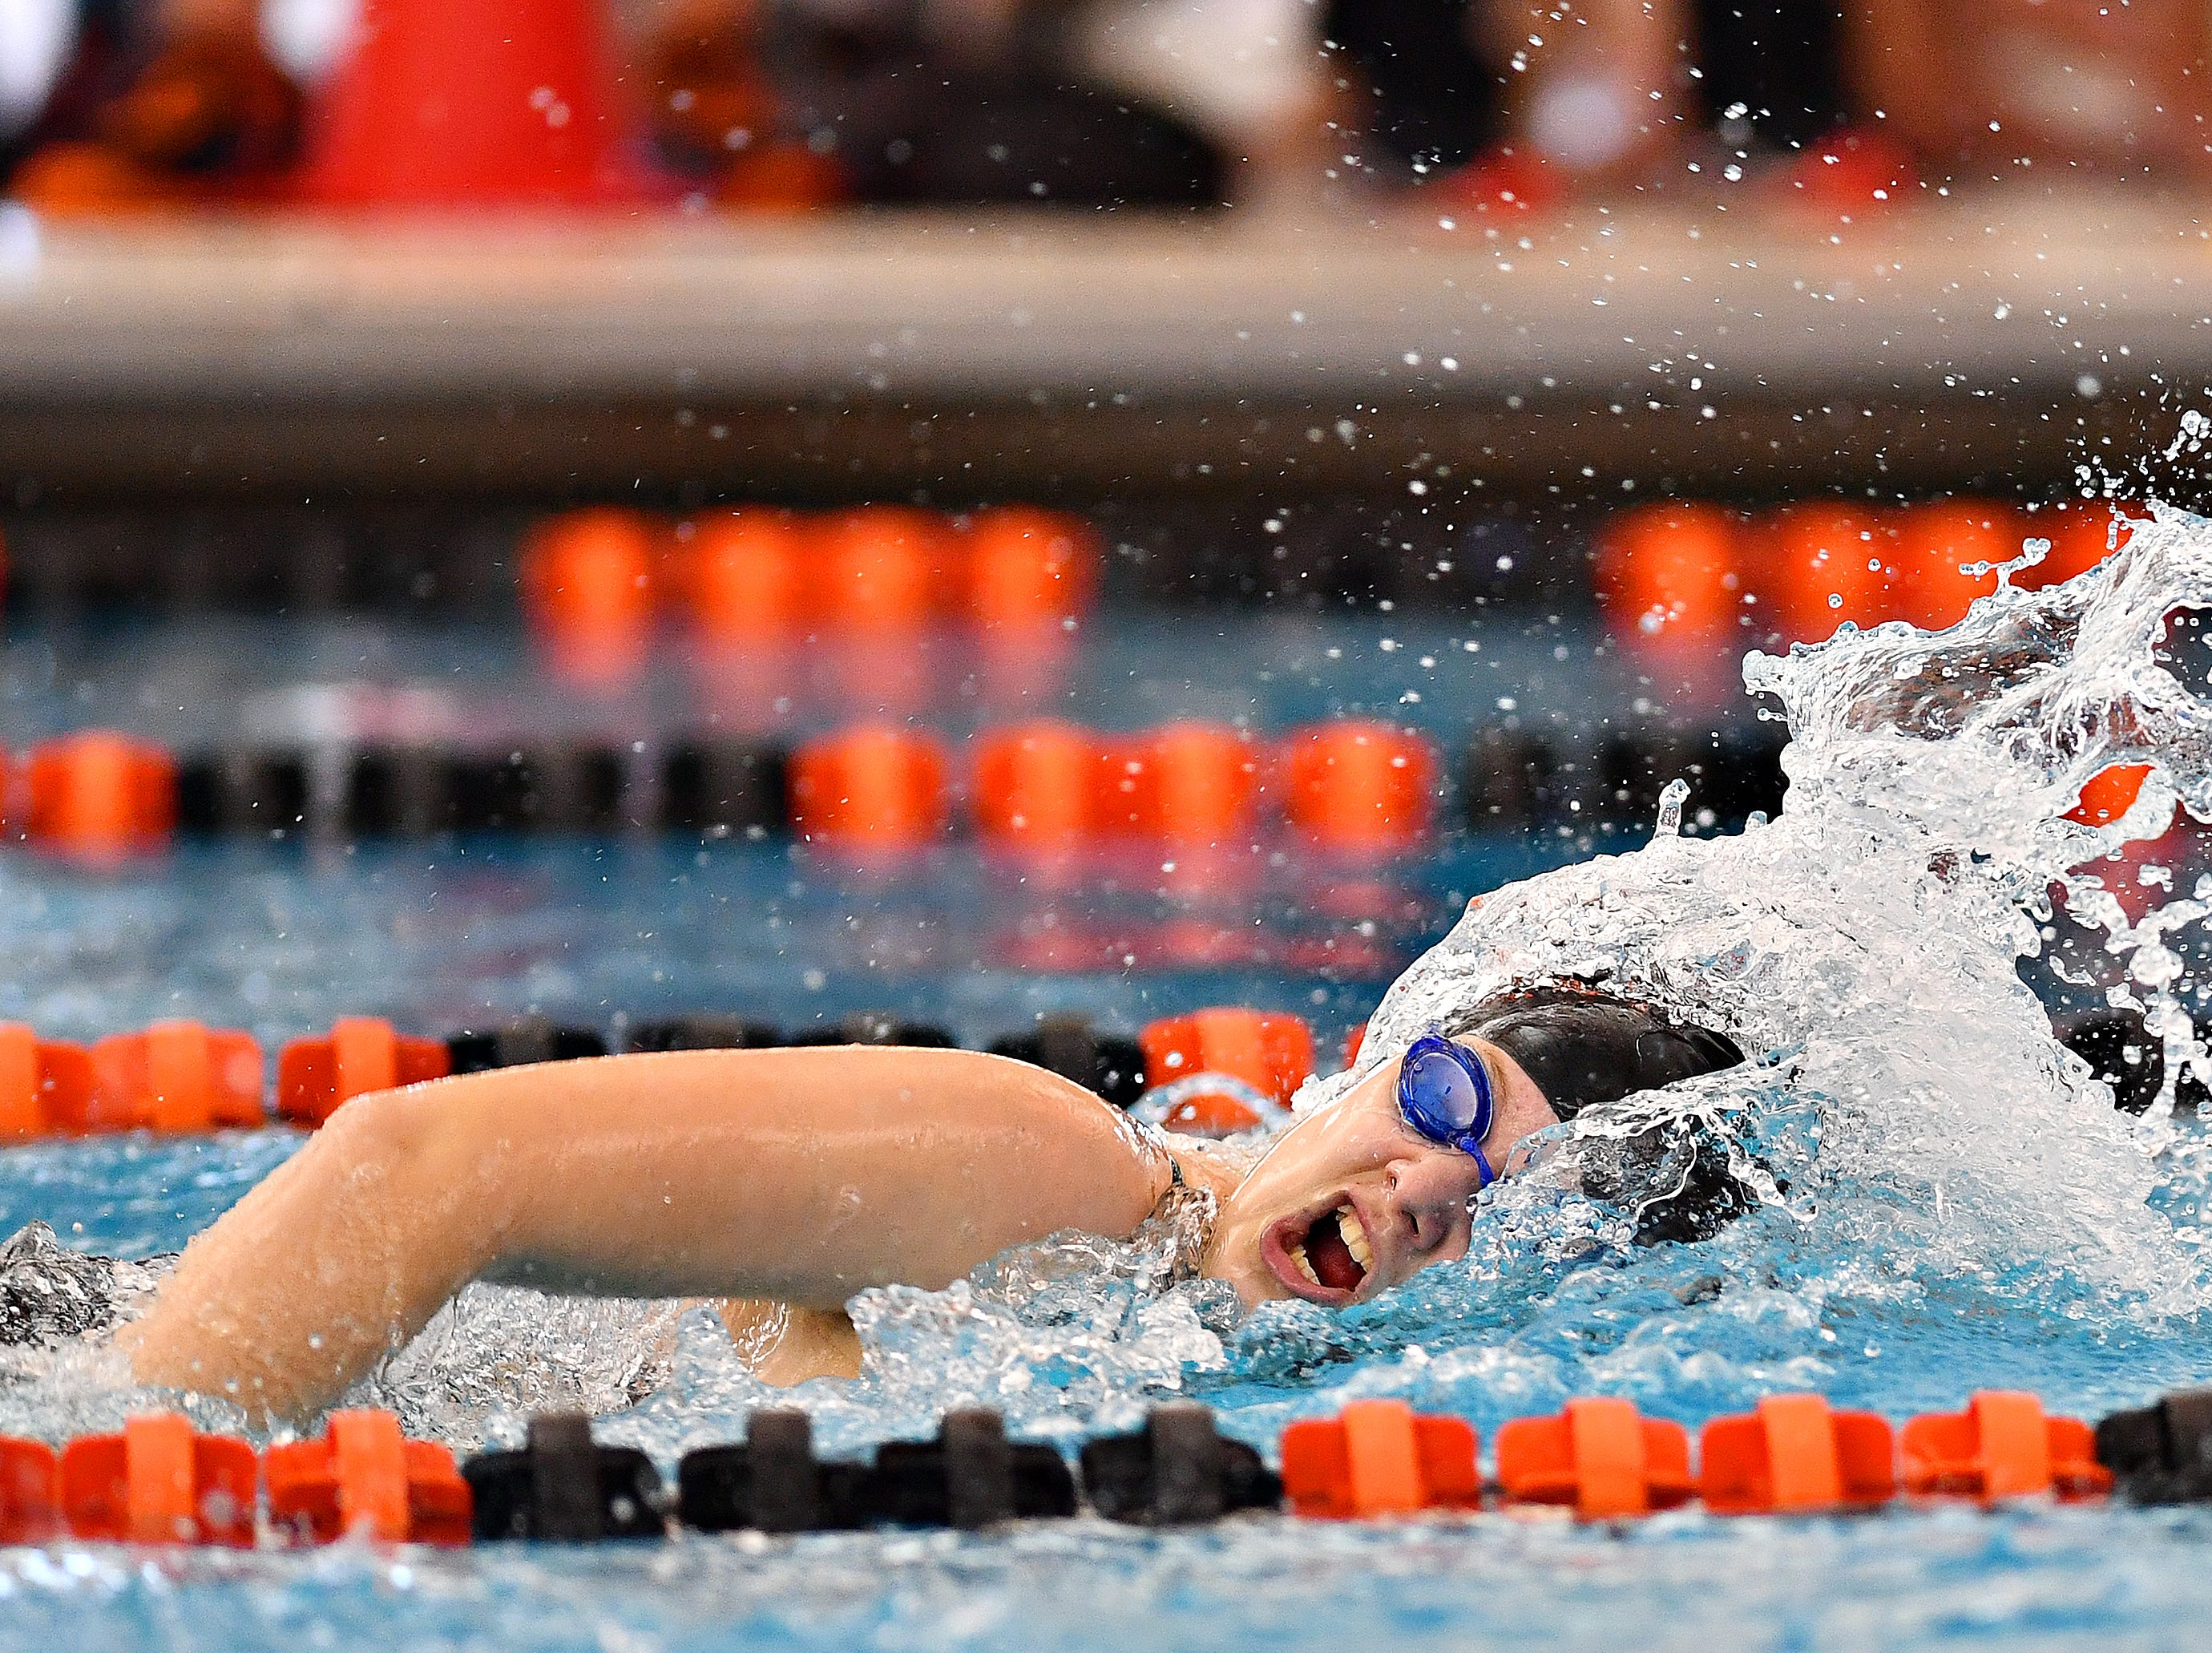 York Suburban's Cajsa Fryar swims the first leg of the 400 Yard Freestyle Relay event during York-Adams League Swimming Championship at Central York High School in Springettsbury Township, Saturday, Feb. 9, 2019. Dawn J. Sagert photo